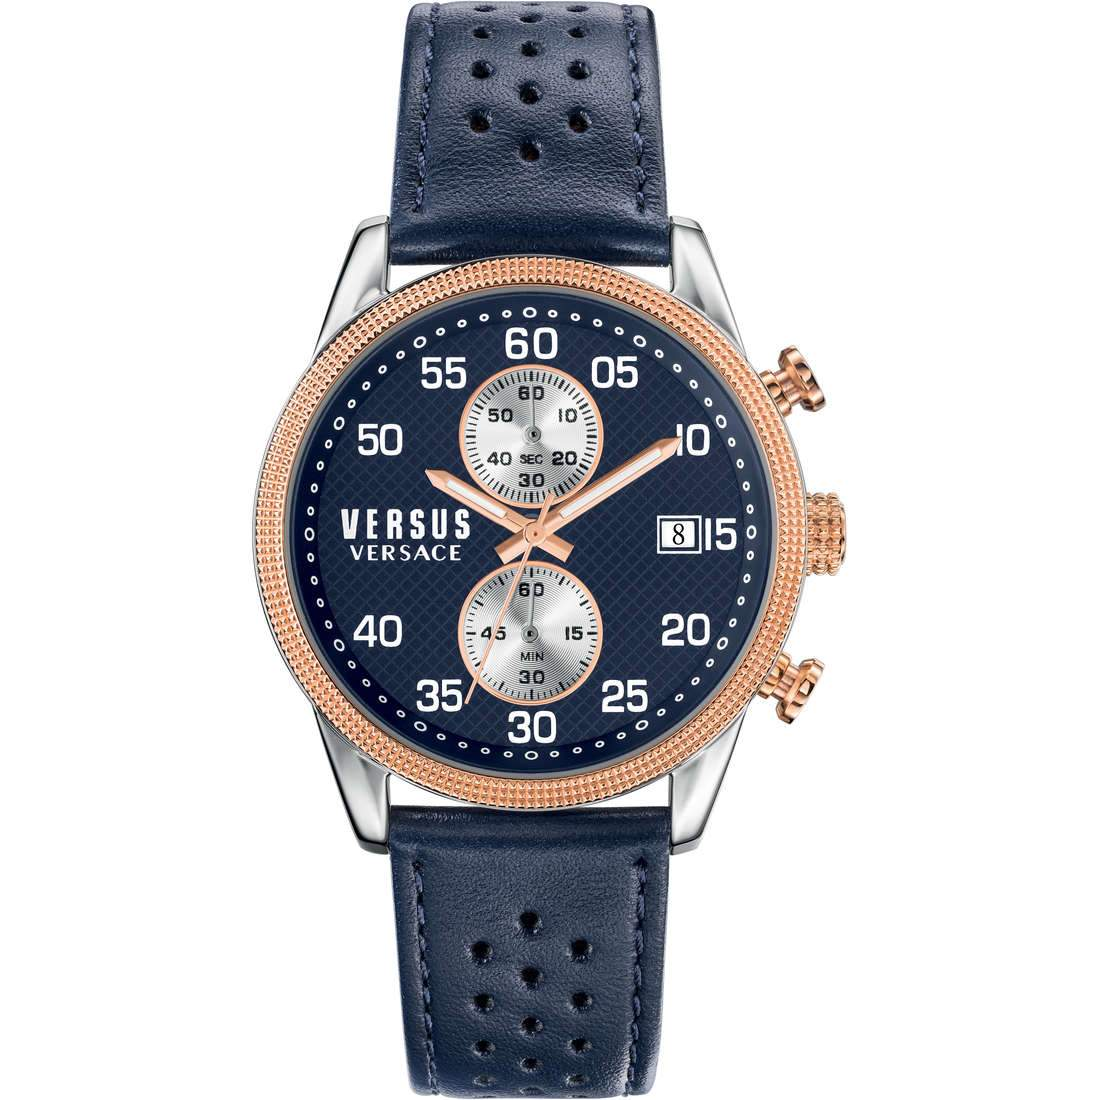 Versus Versace Shoreditch Chronograph IP Rose Gold - Watches & Crystals